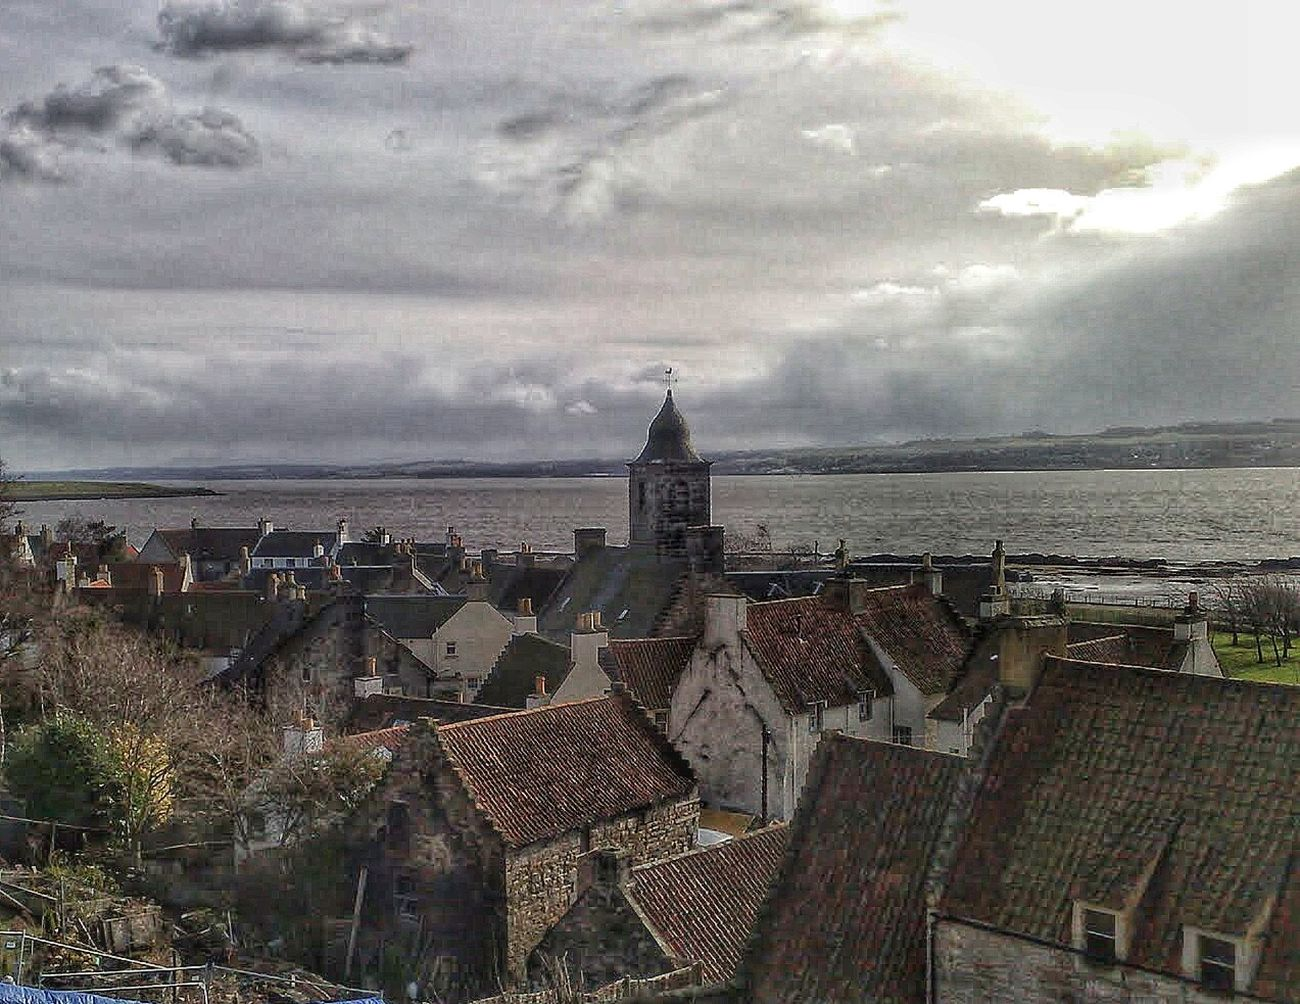 A view from behind Culross Palace, looking towards the bay. Culross is a small village in Fife believed to originally have been founded in the 6th century by Saint Serf. There is a whole host of beautiful old buildings and the town has a long history. It was once a major port although the original harbour has long gone. Worth a look in Google maps though as you can see where the harbour once was. Scotland Sea Outdoors Fife